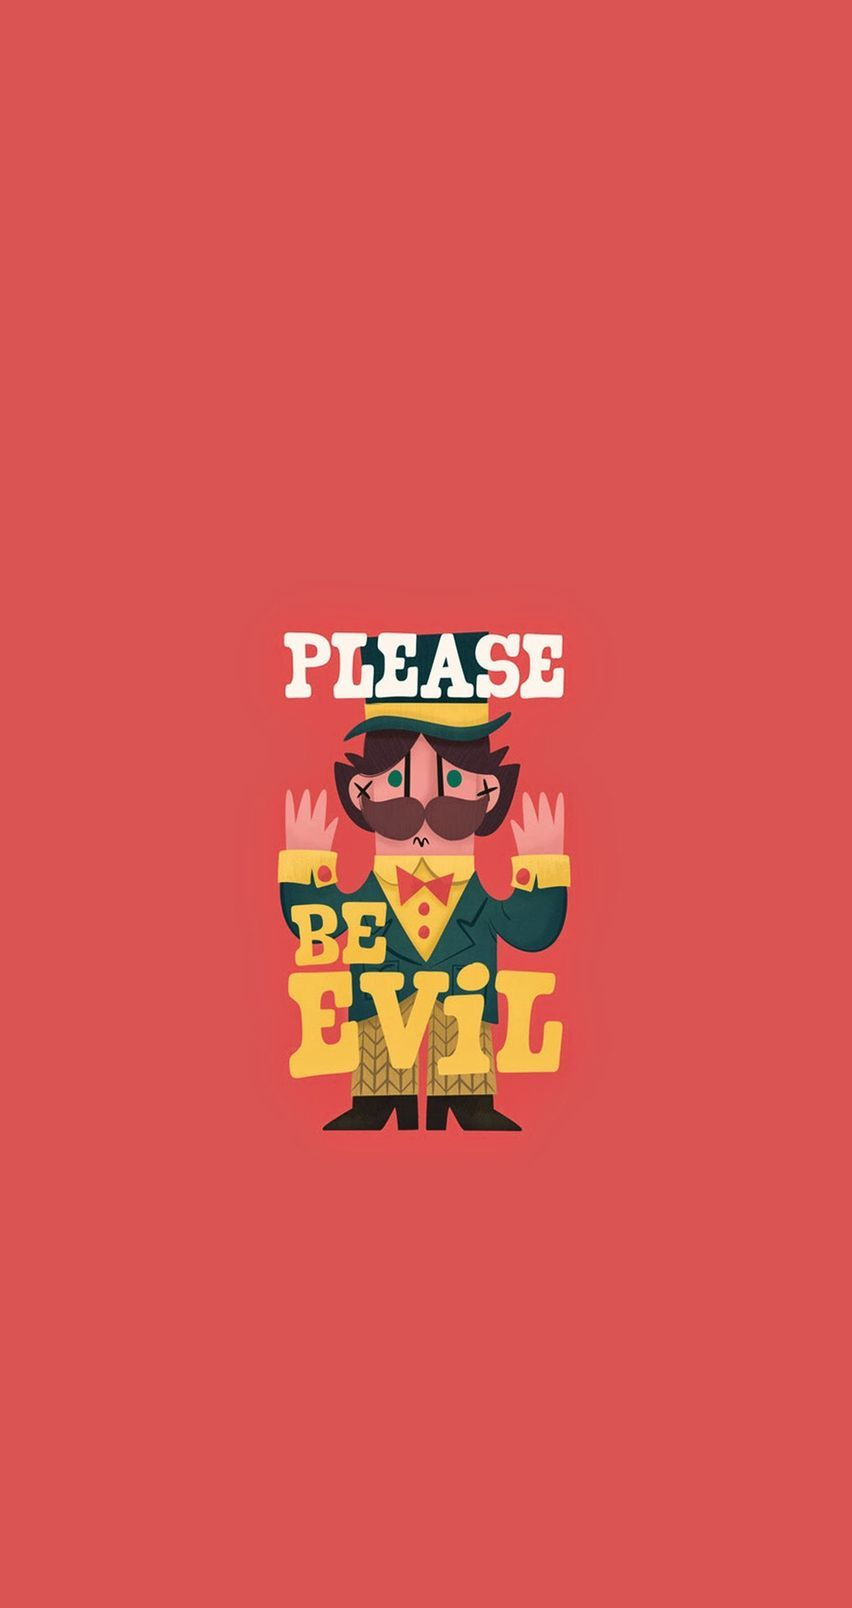 please be evil. tap image for more cartoon wallpapers! - @mobile9